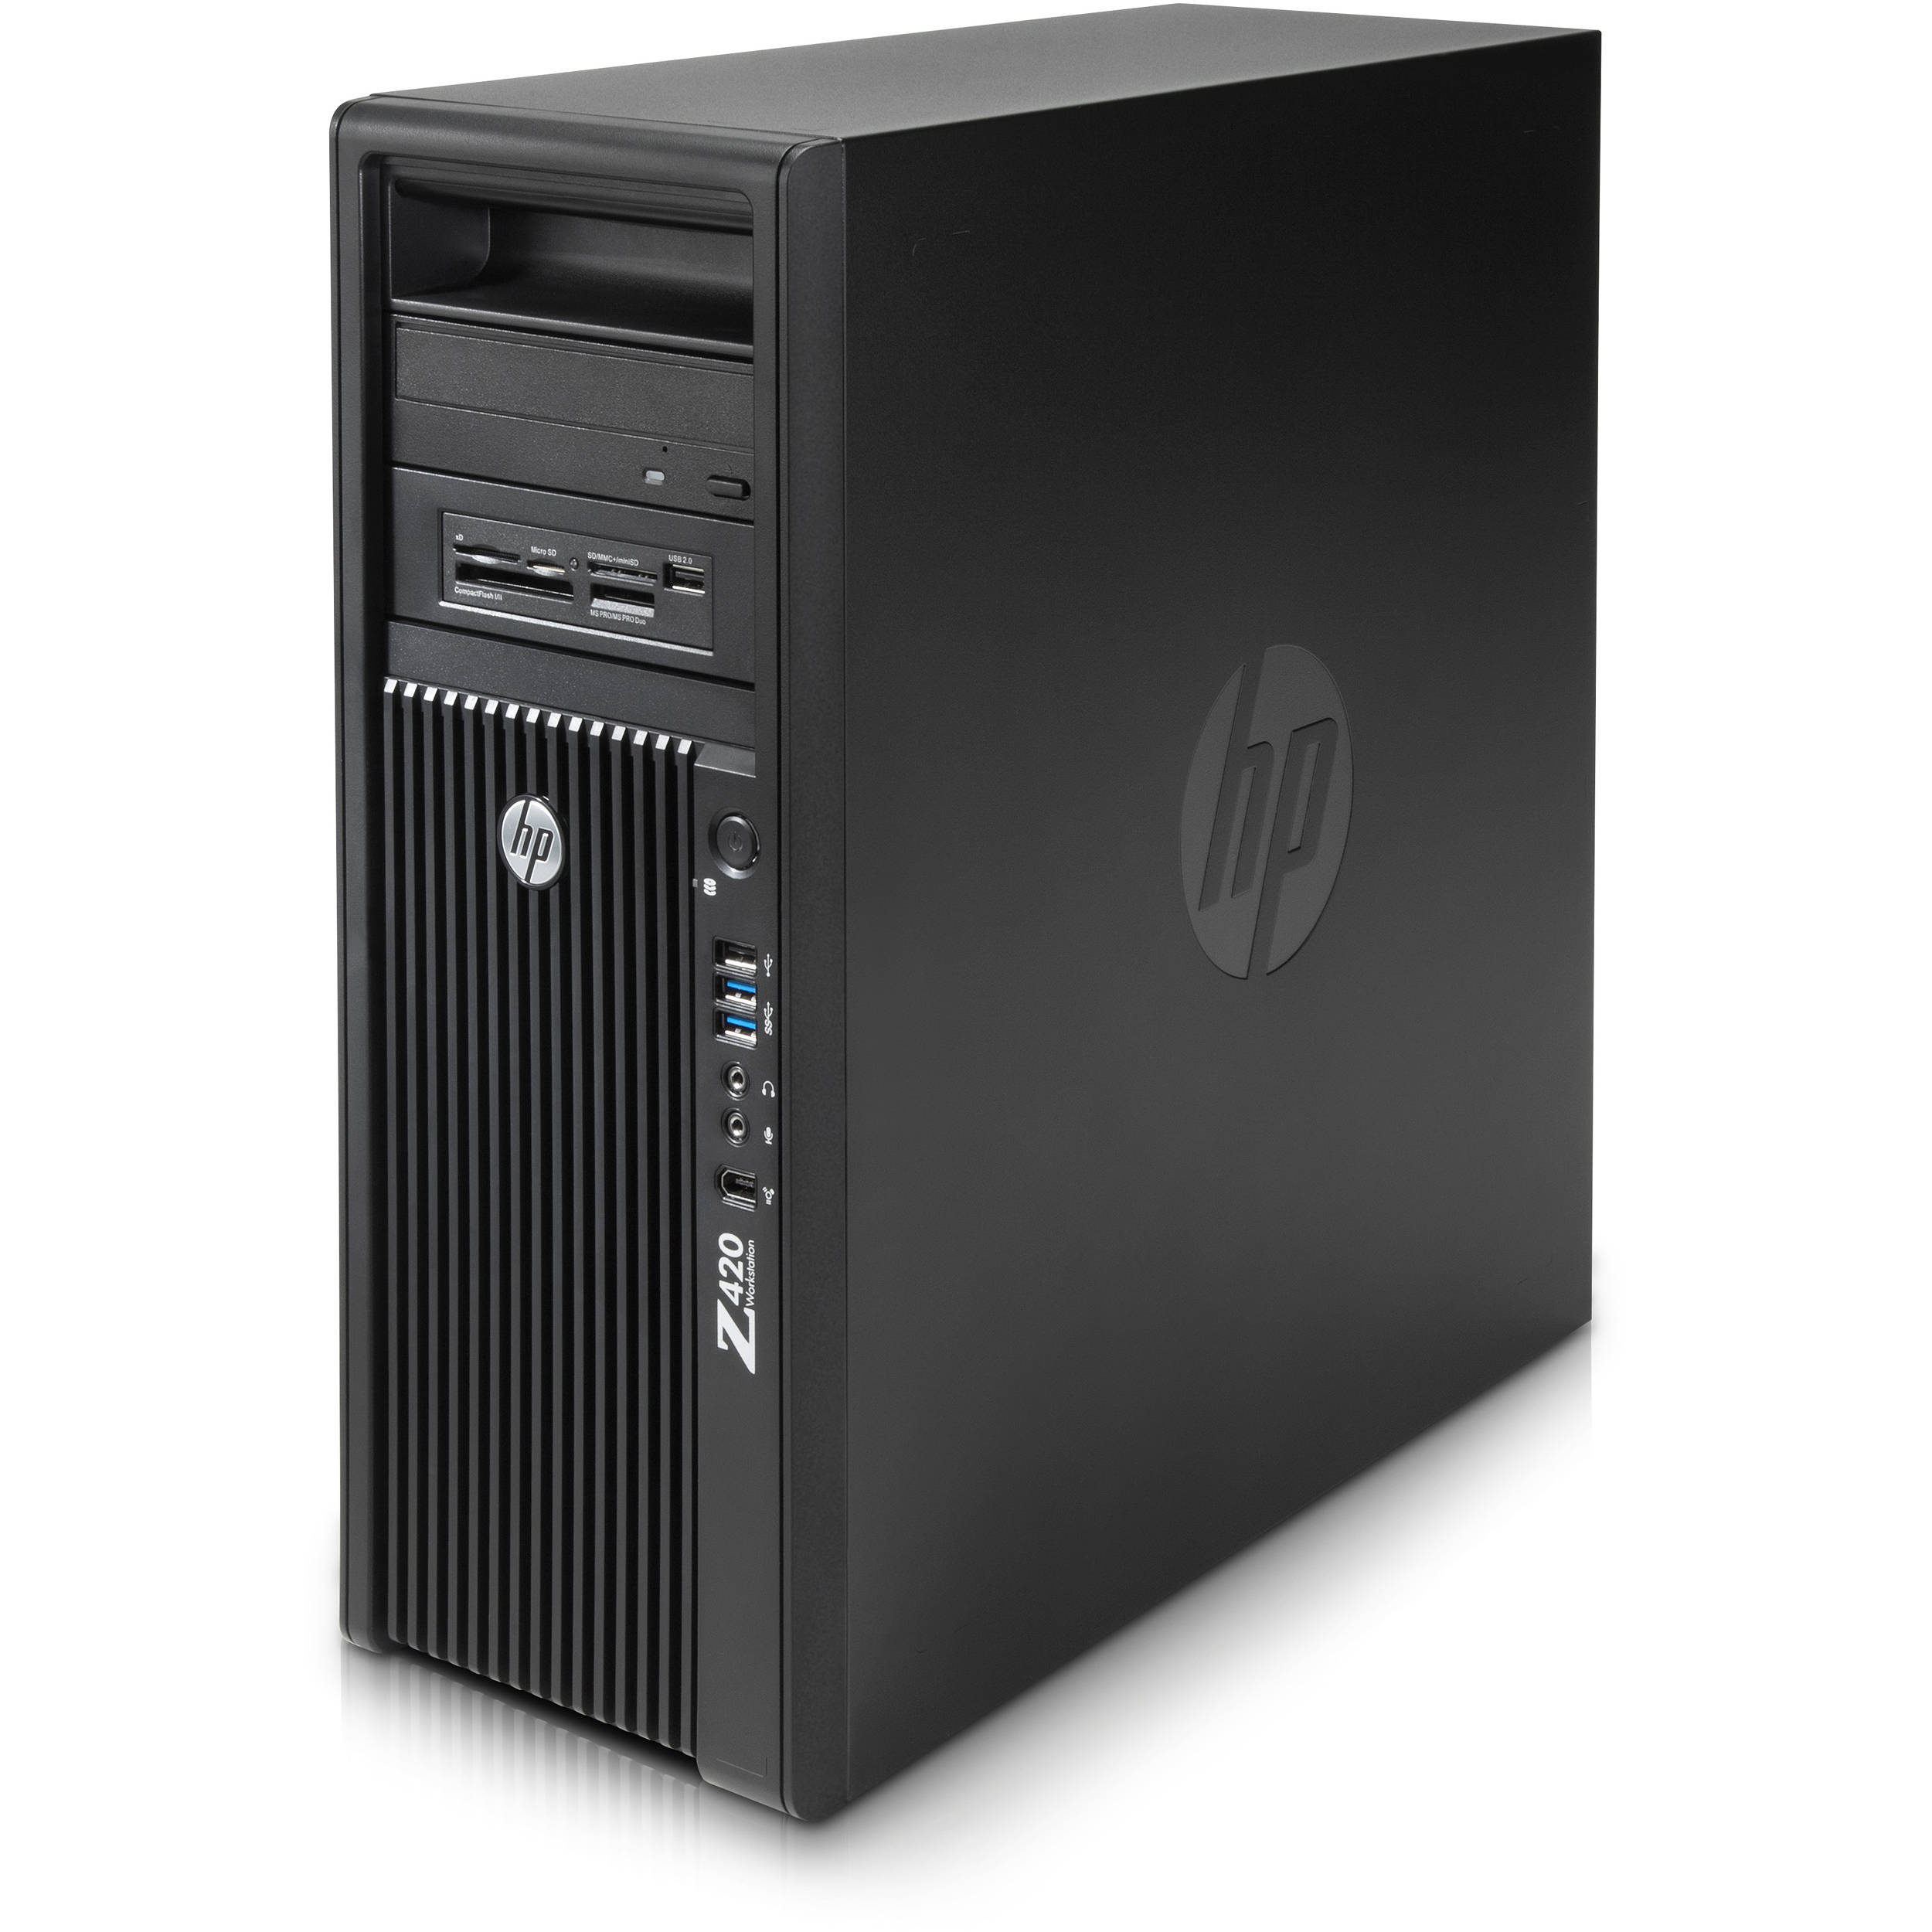 N222vd3668emea01 as well Hp b2b95ut aba z420 ws x 3 6g 6gb 500gb dvdr w7p64 likewise Install Microsoft Office 2016 Windows 10 additionally 50303863 additionally Sale 7637742 Microsoft Windows10 Pro Product Key Code Win10 Professional Genuine Oem Key 32bit 64bit. on windows 7 professional product code